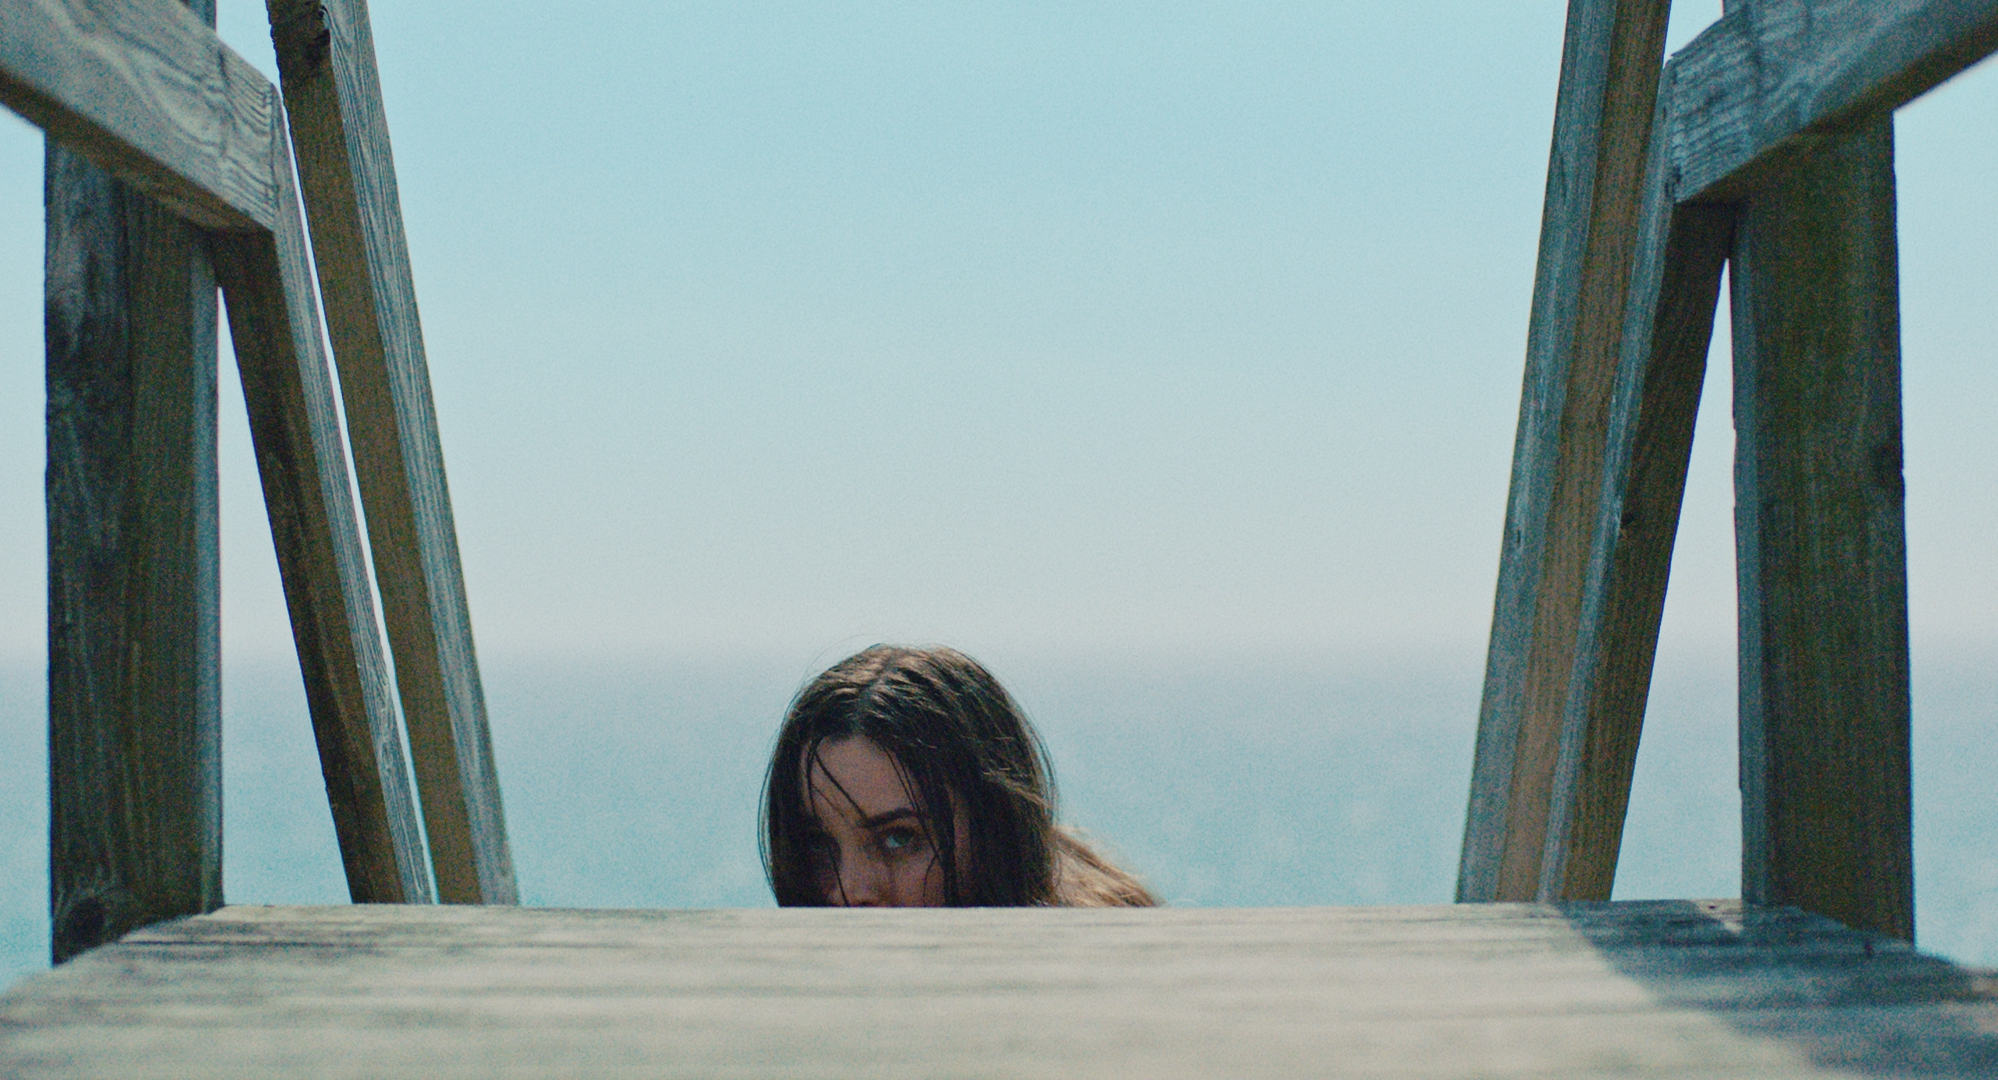 The Beach House Review: Sunny Summer Scares